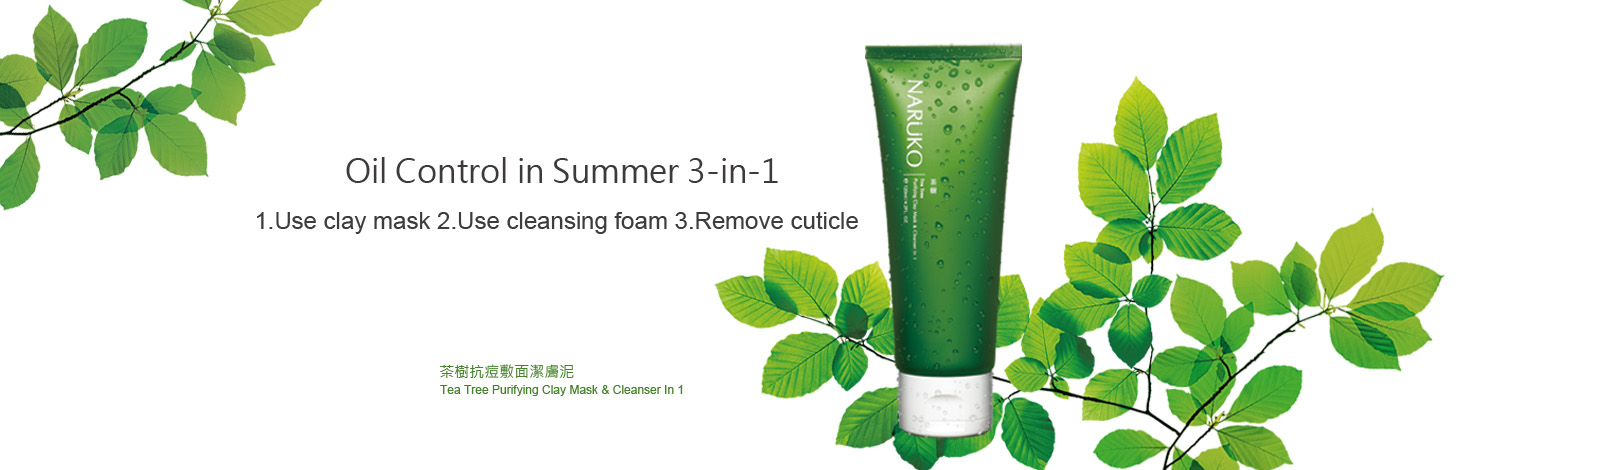 [cml_media_alt id='6965']tee-tree-purifying-clay-mask-cleanser-in-1-01[/cml_media_alt]